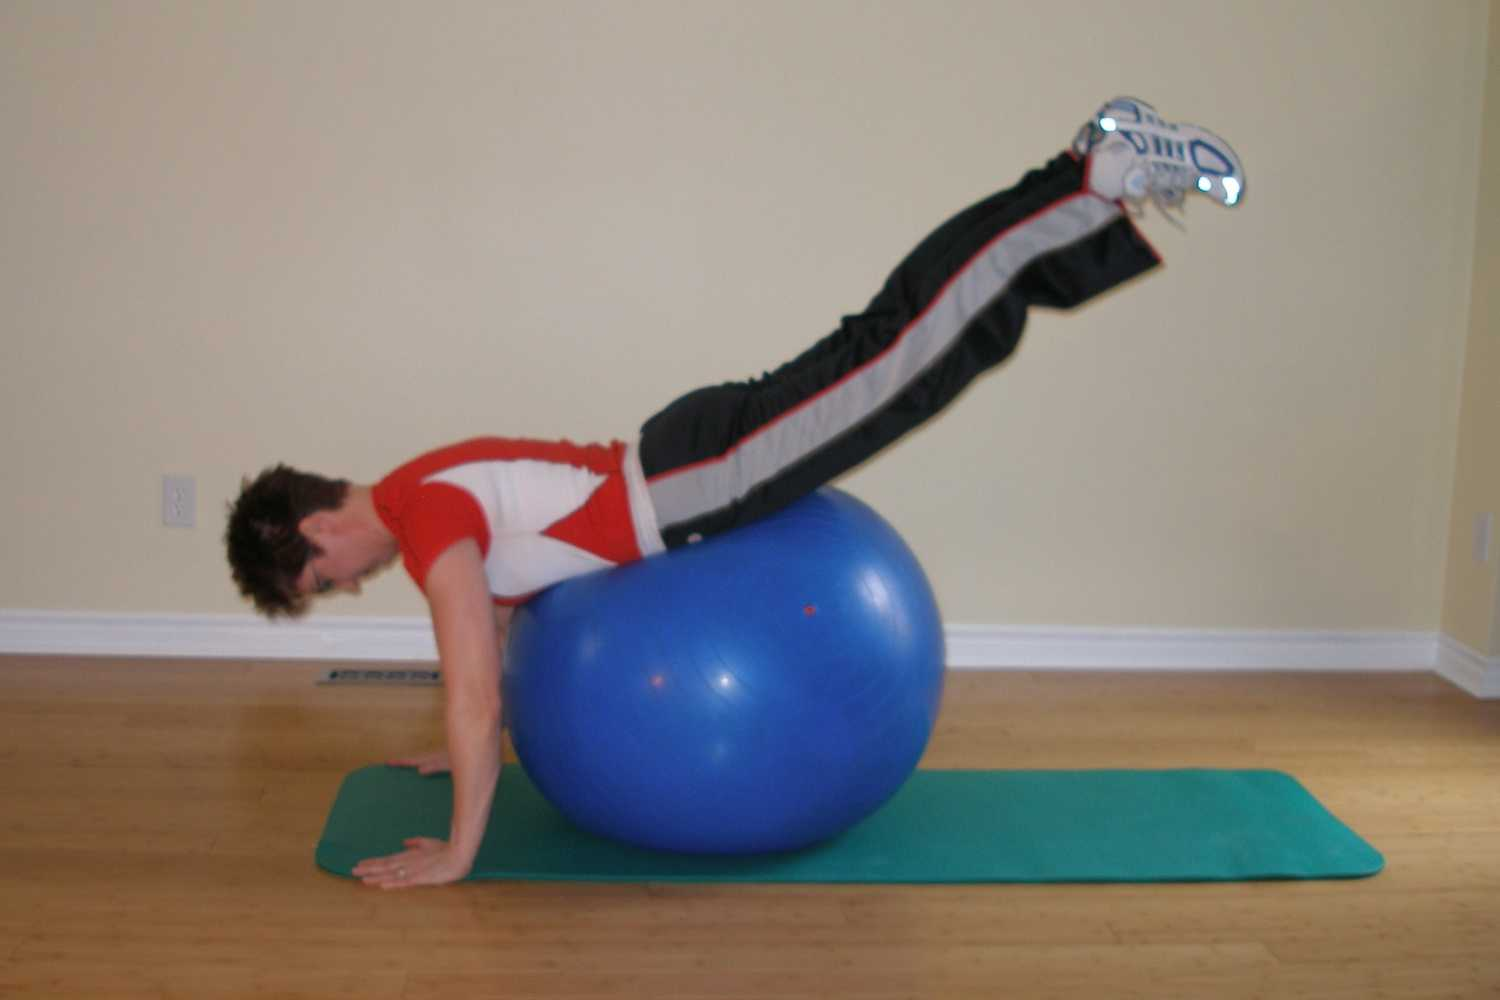 exercise ball exercise for scuba diving